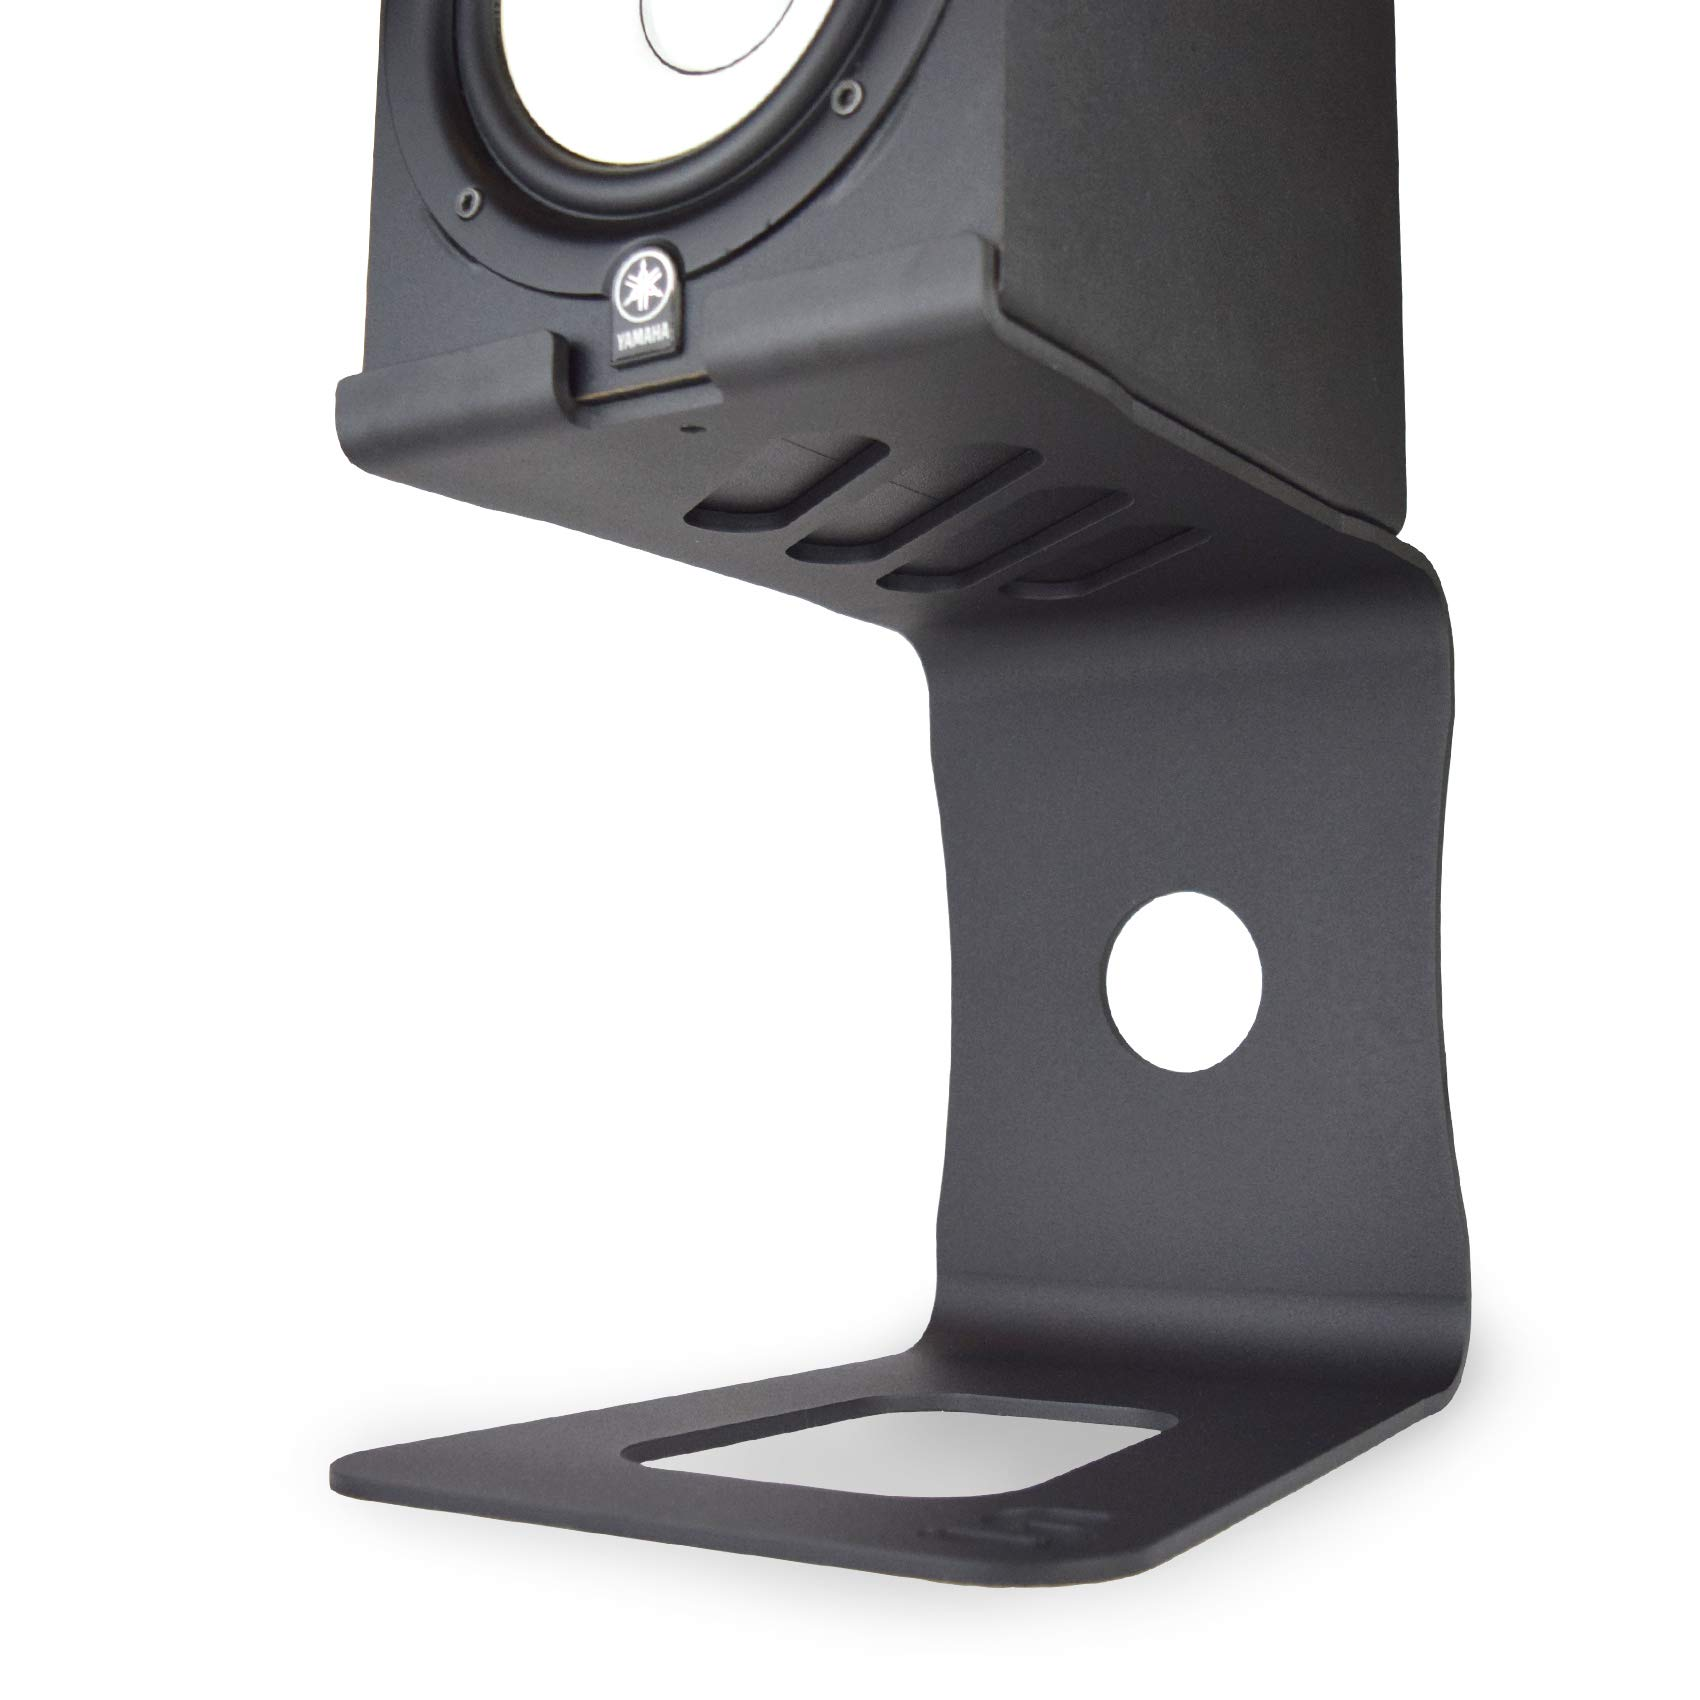 Soundrise PRO Studio Monitor Stands (Black/Pair) - Aluminum Desktop Speaker Stands for Studio Reference Monitors 100% Made in USA (Black) by Soundrise